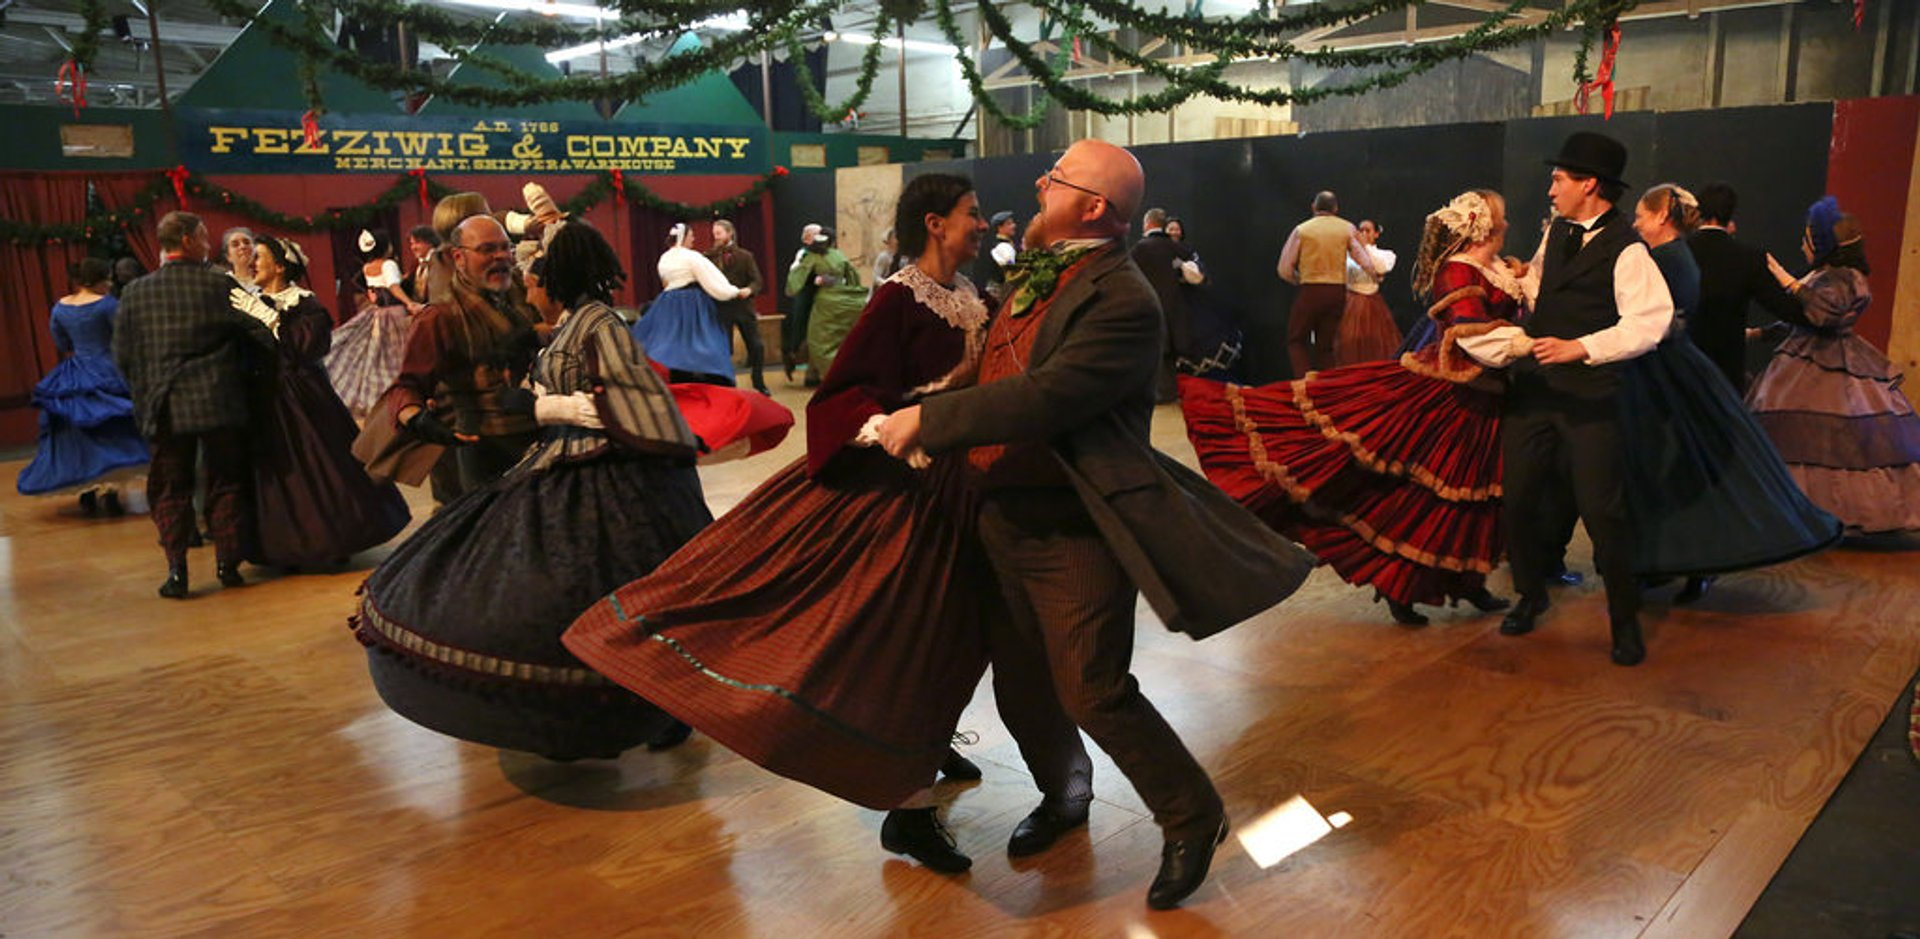 Best time for Great Dickens Christmas Fair 2020